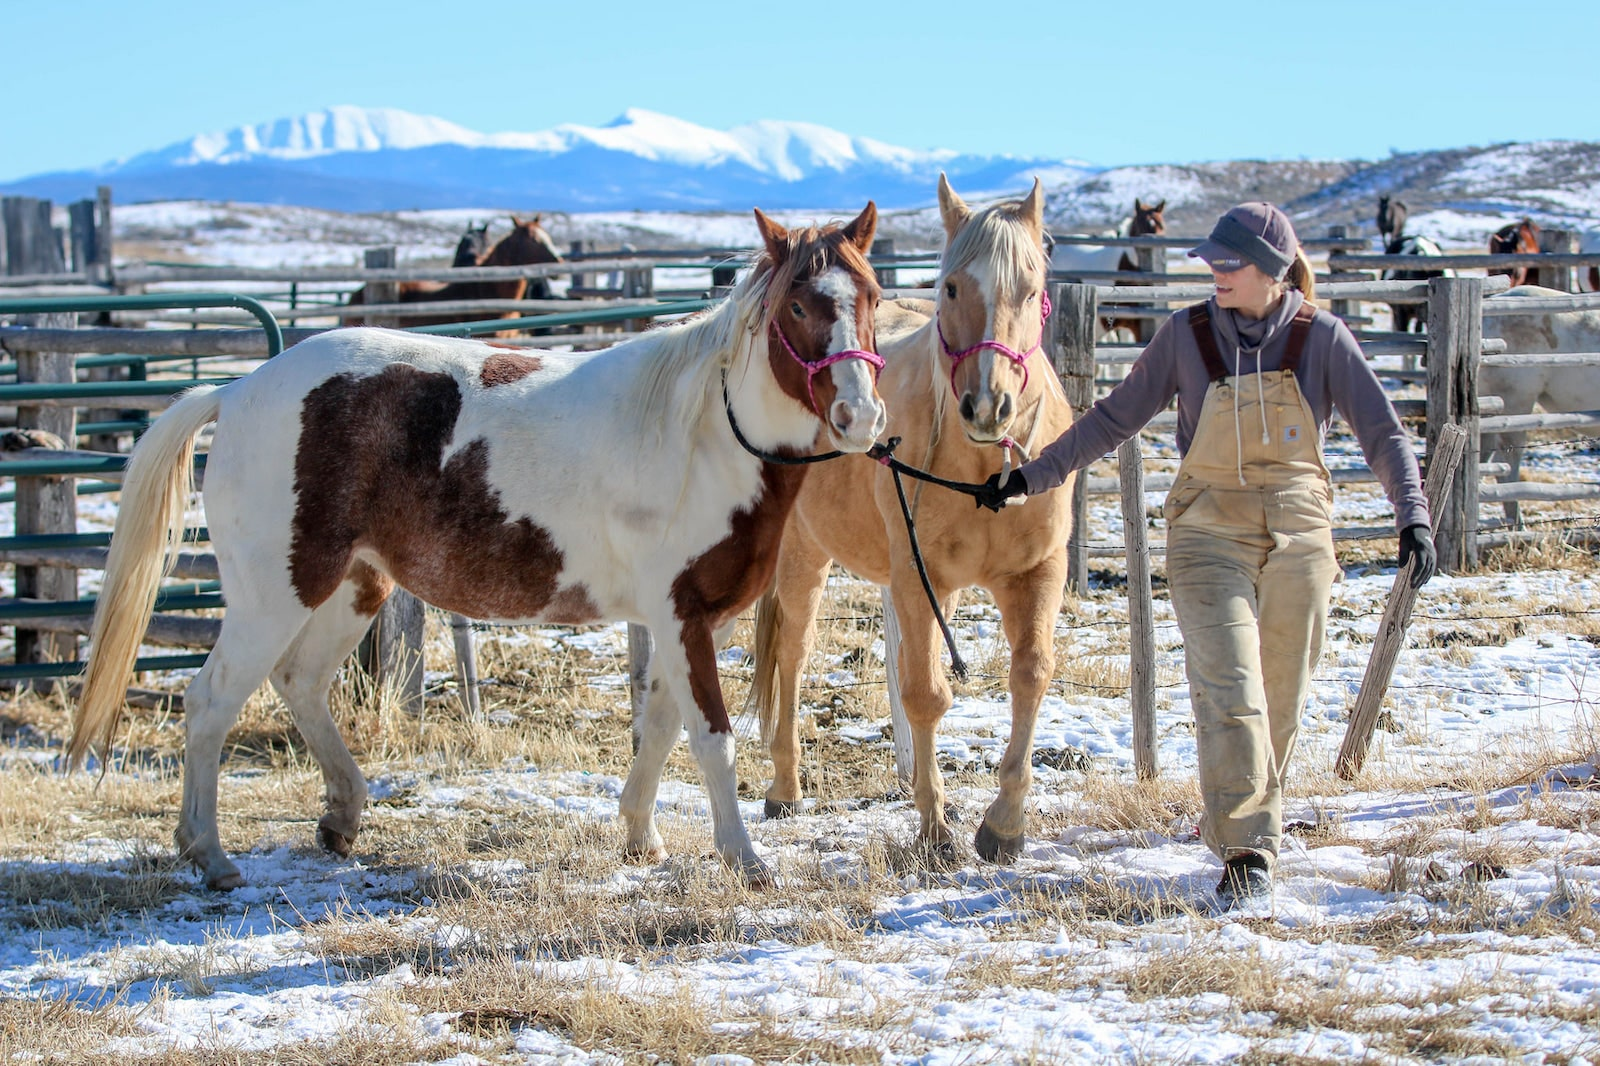 Image of a woman leading horses at Bar Lazy J Guest Ranch in Parshall, Colorado